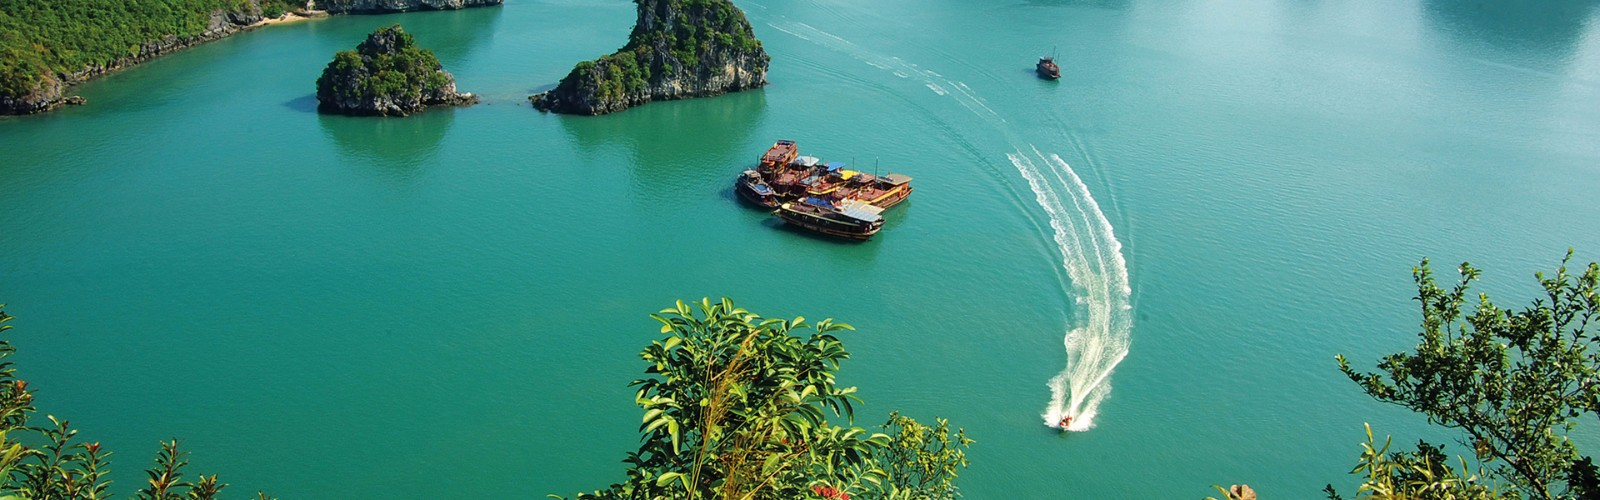 AU CO Cruises - Halong Bay in Focus tour